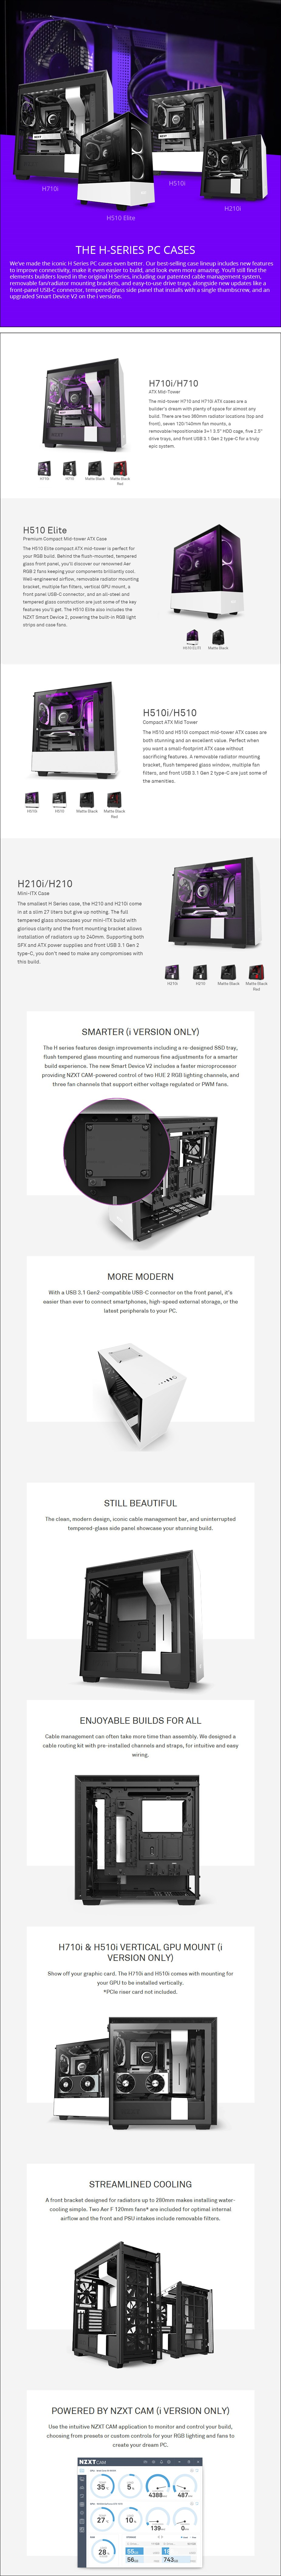 NZXT H710i Smart Tempered Glass Mid-Tower E-ATX Case - Matte White - Overview 1